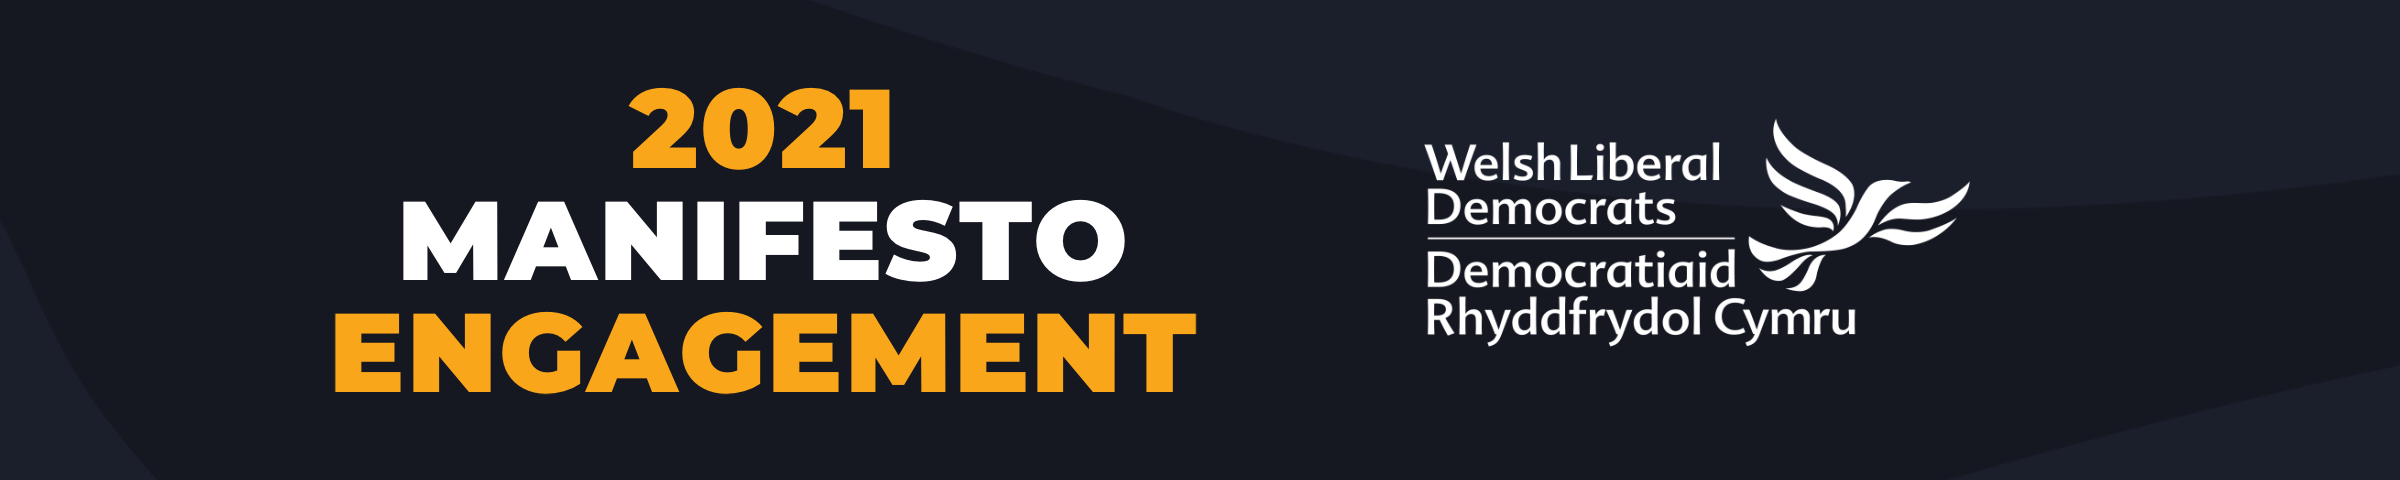 MANIFESTO_ENGAGEMENT_EMAIL_BANNER.png